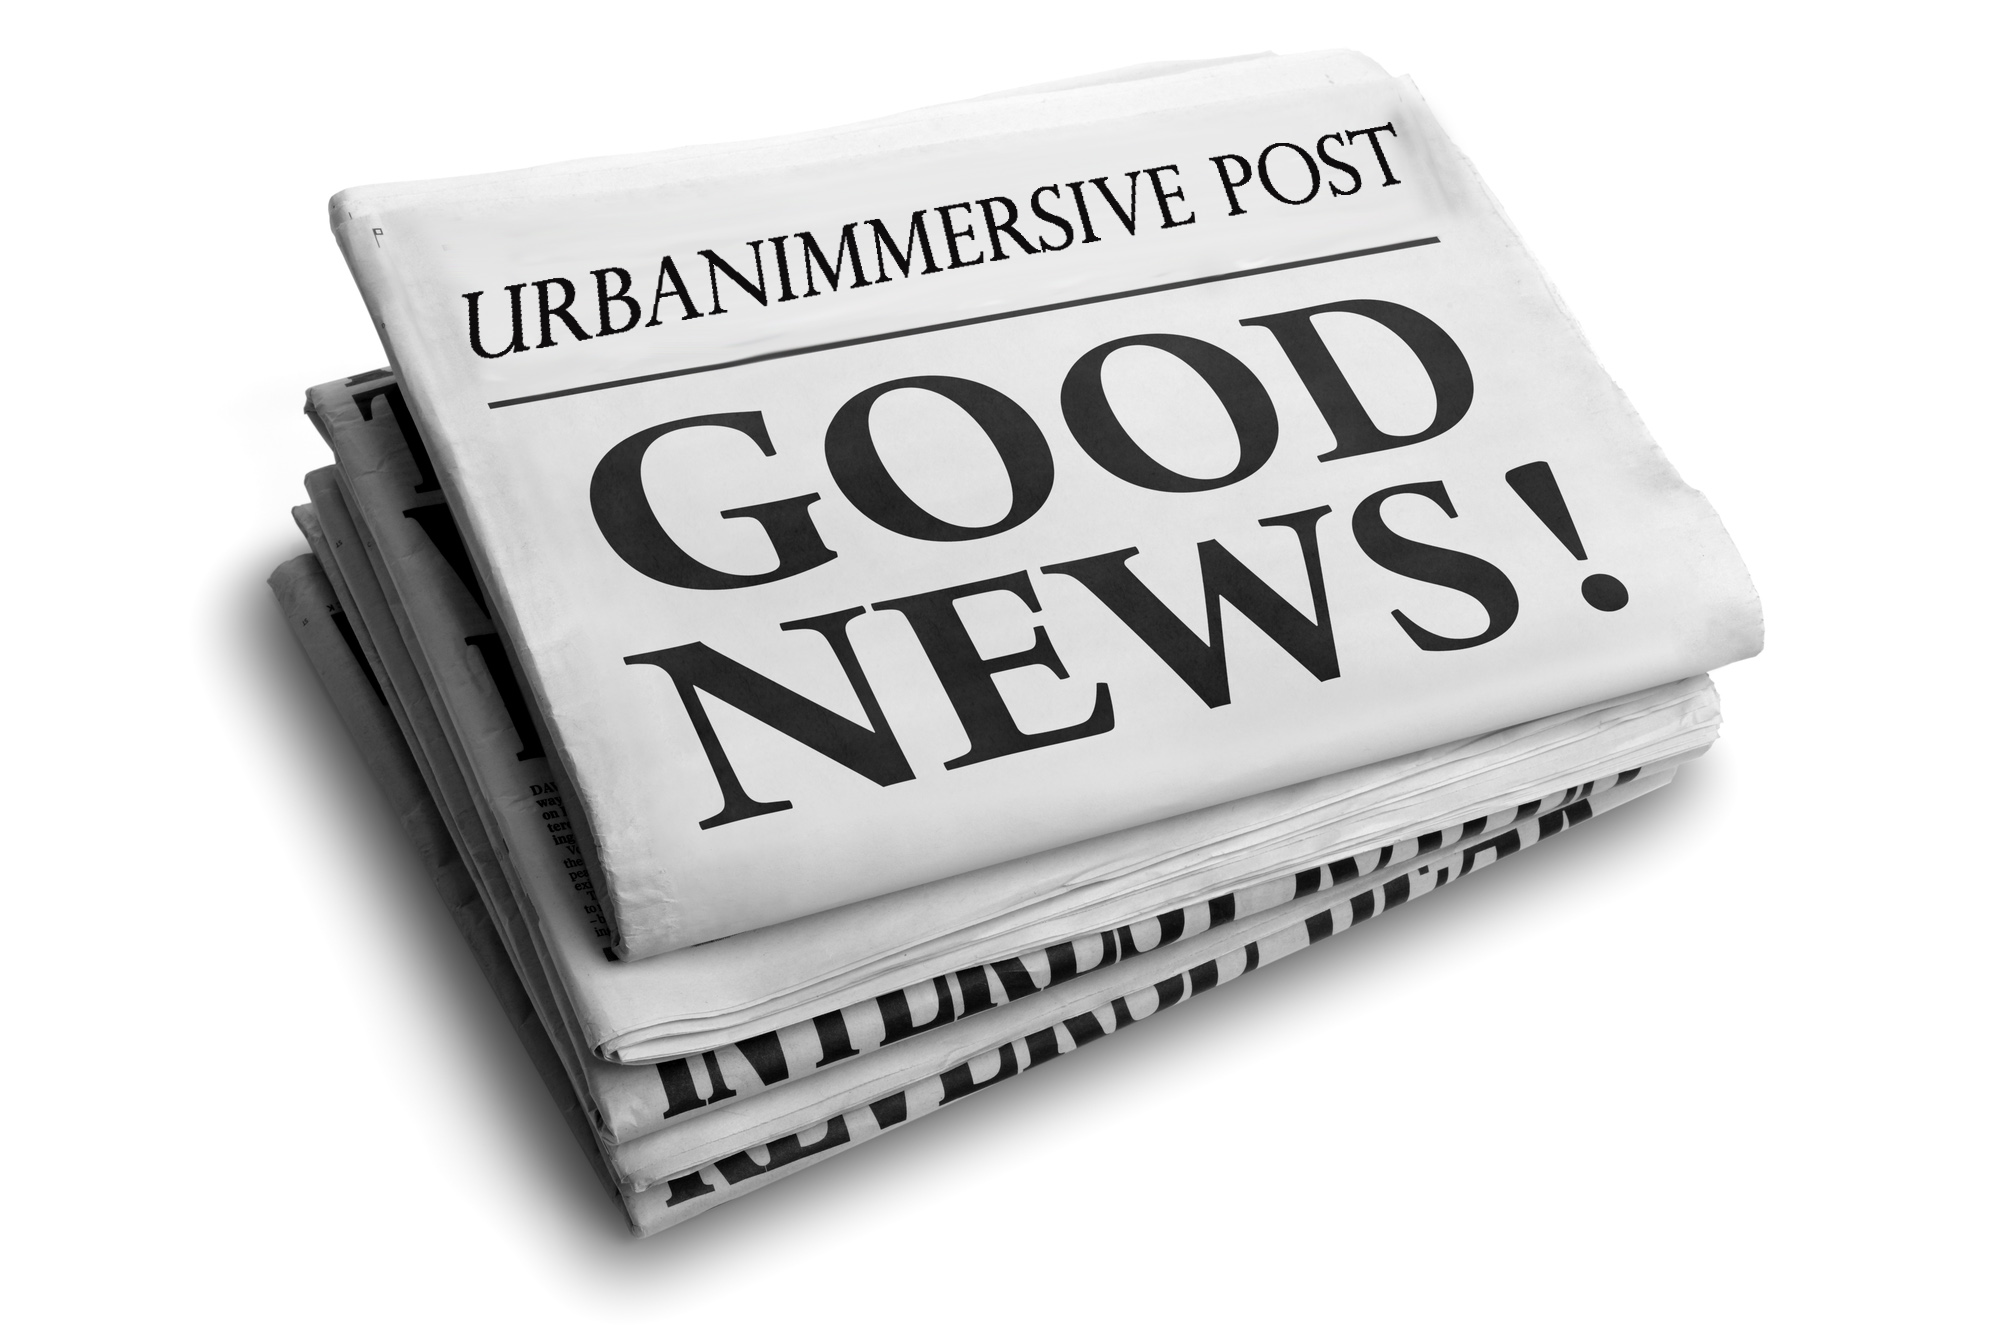 Urbanimmersive Announces an Increase in Revenues of 344% for its 2018 Year-End Financial Results Compared to Previous Year